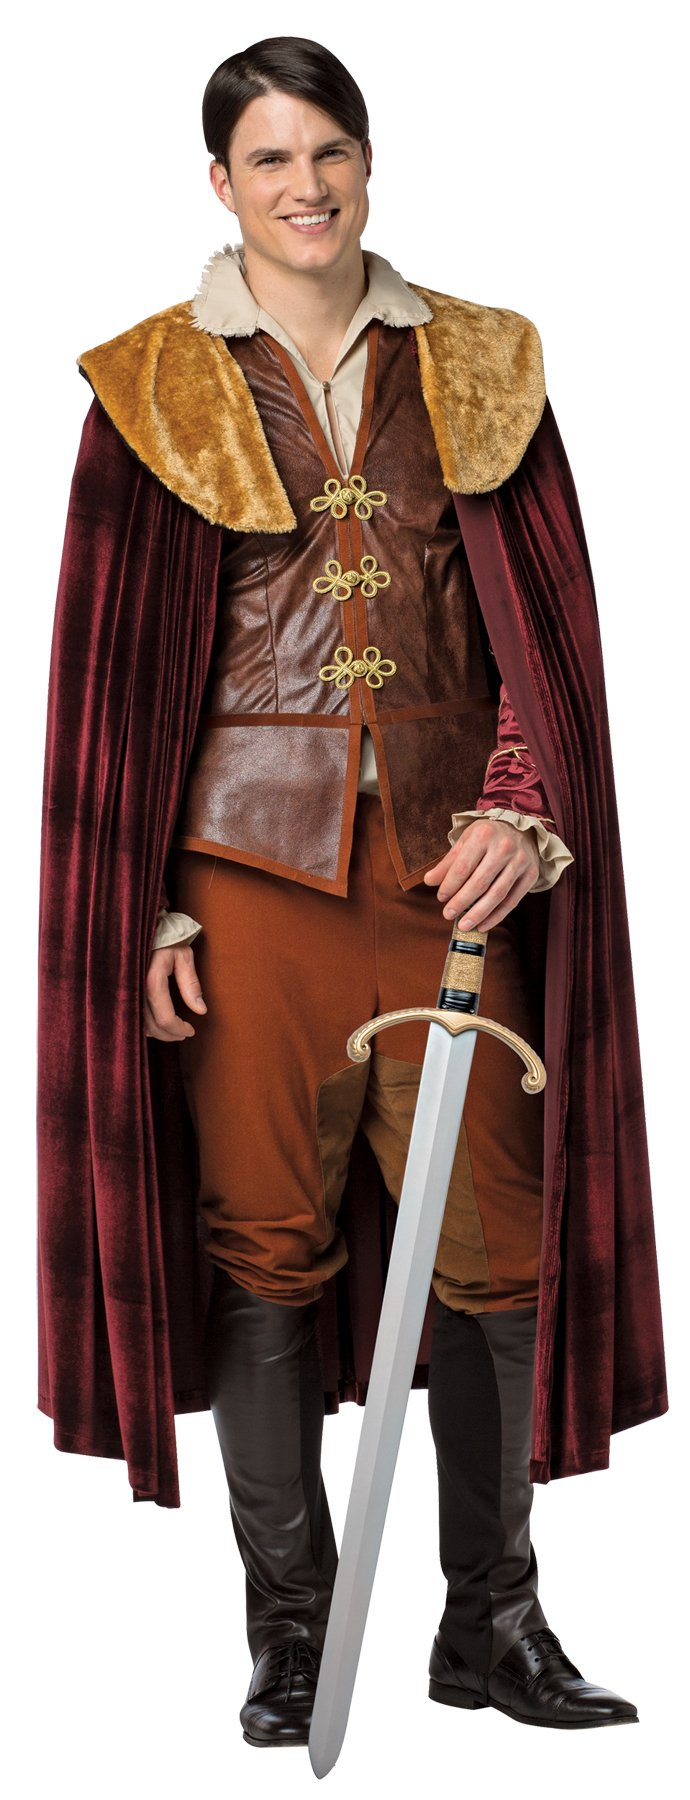 UHC Men's Once Upon A Time Prince Charming Outfit Halloween Fancy Costume, M (38-40)